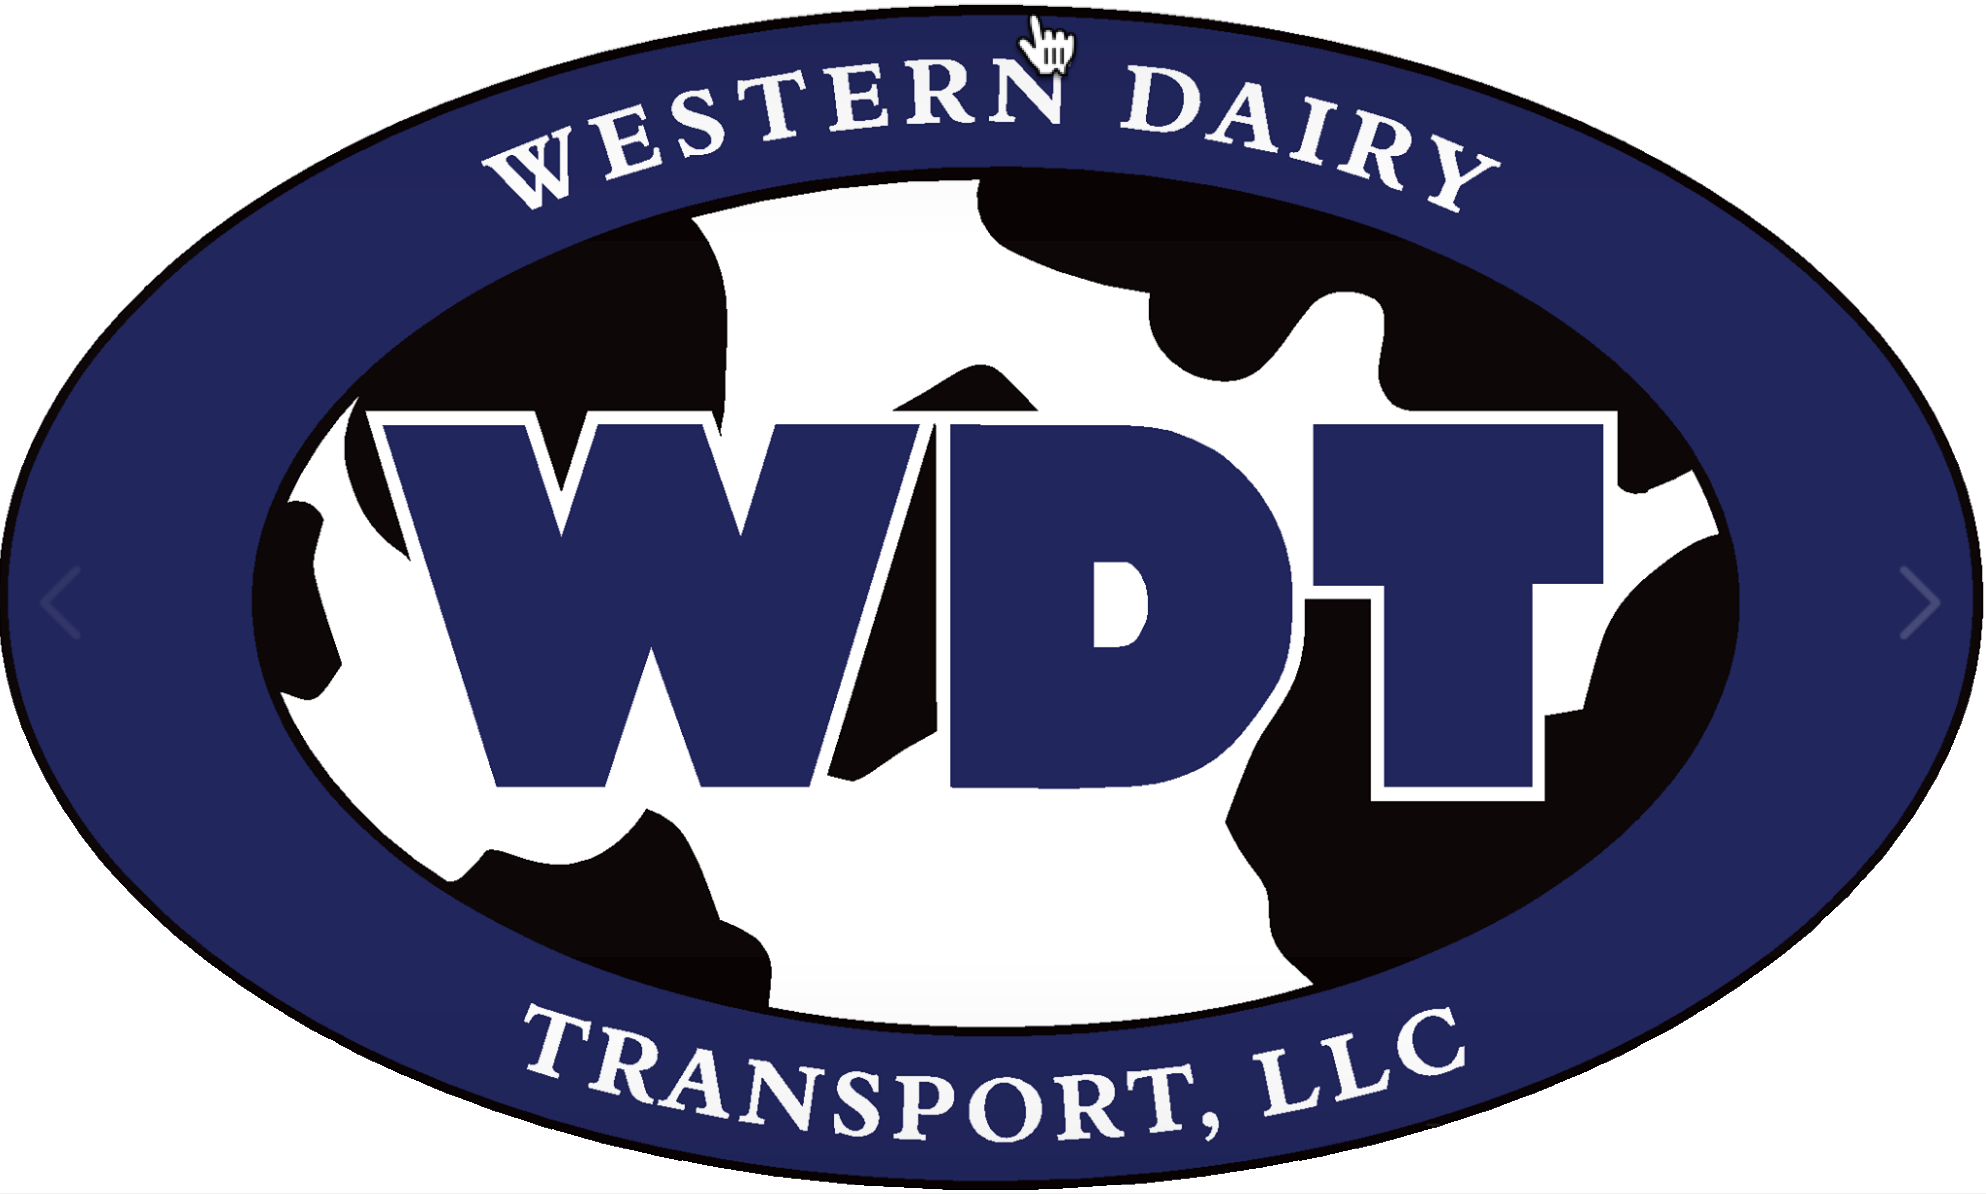 Western Dairy Transport – Malwarebytes detection and remediation of malware exceeds expectations - Western Dairy Transport sends ransomware down the road